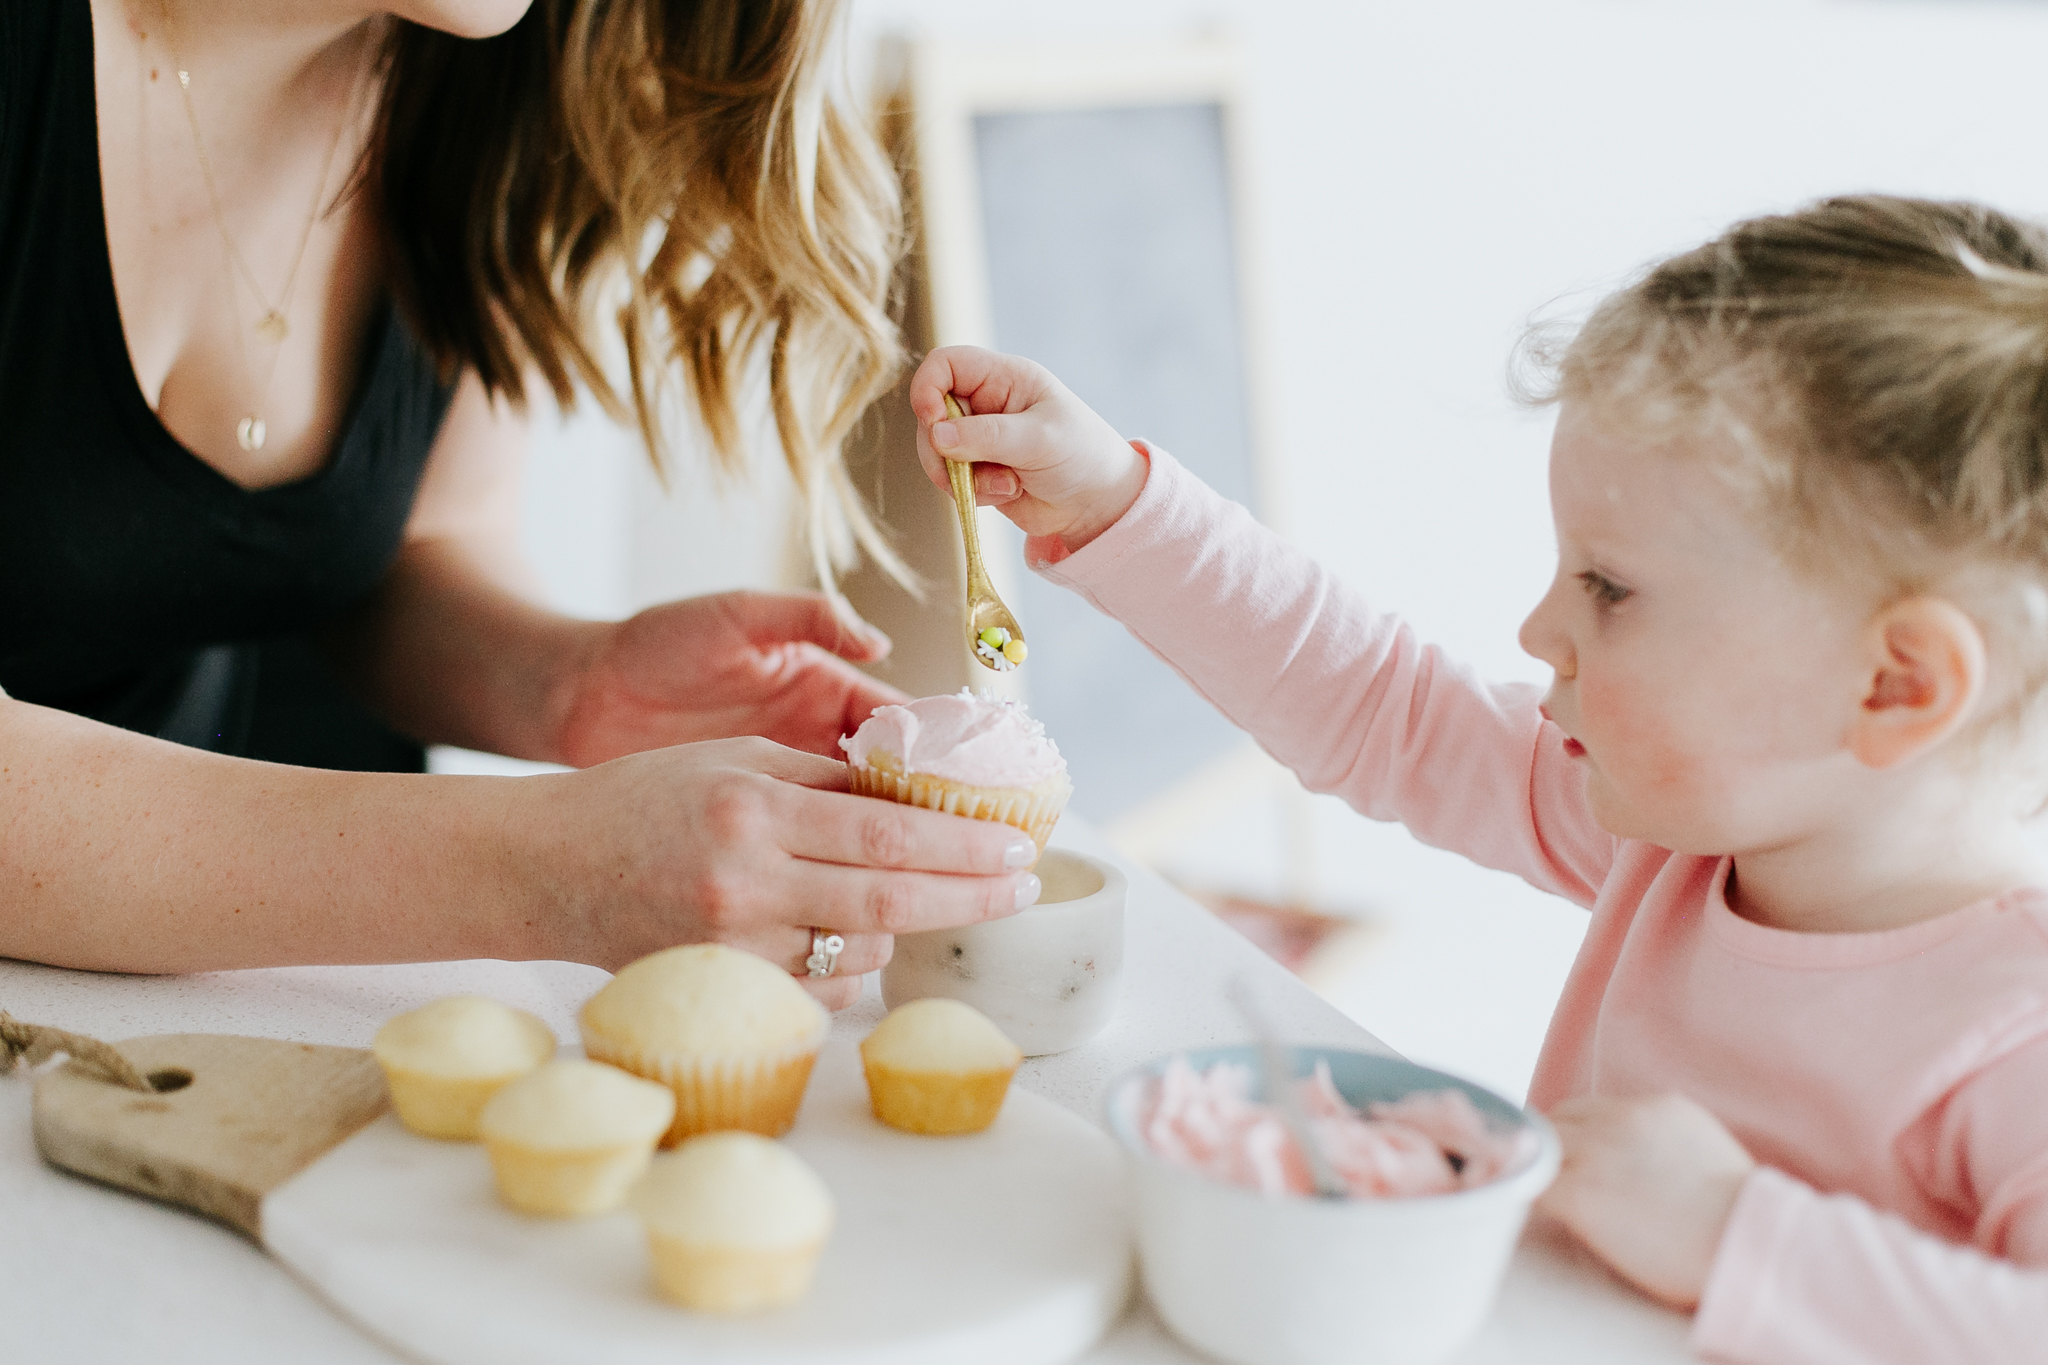 lethbridge-photographer-love-and-be-loved-photography-thornborough-family-lifestyle-session-image-picture-photo-52.jpg